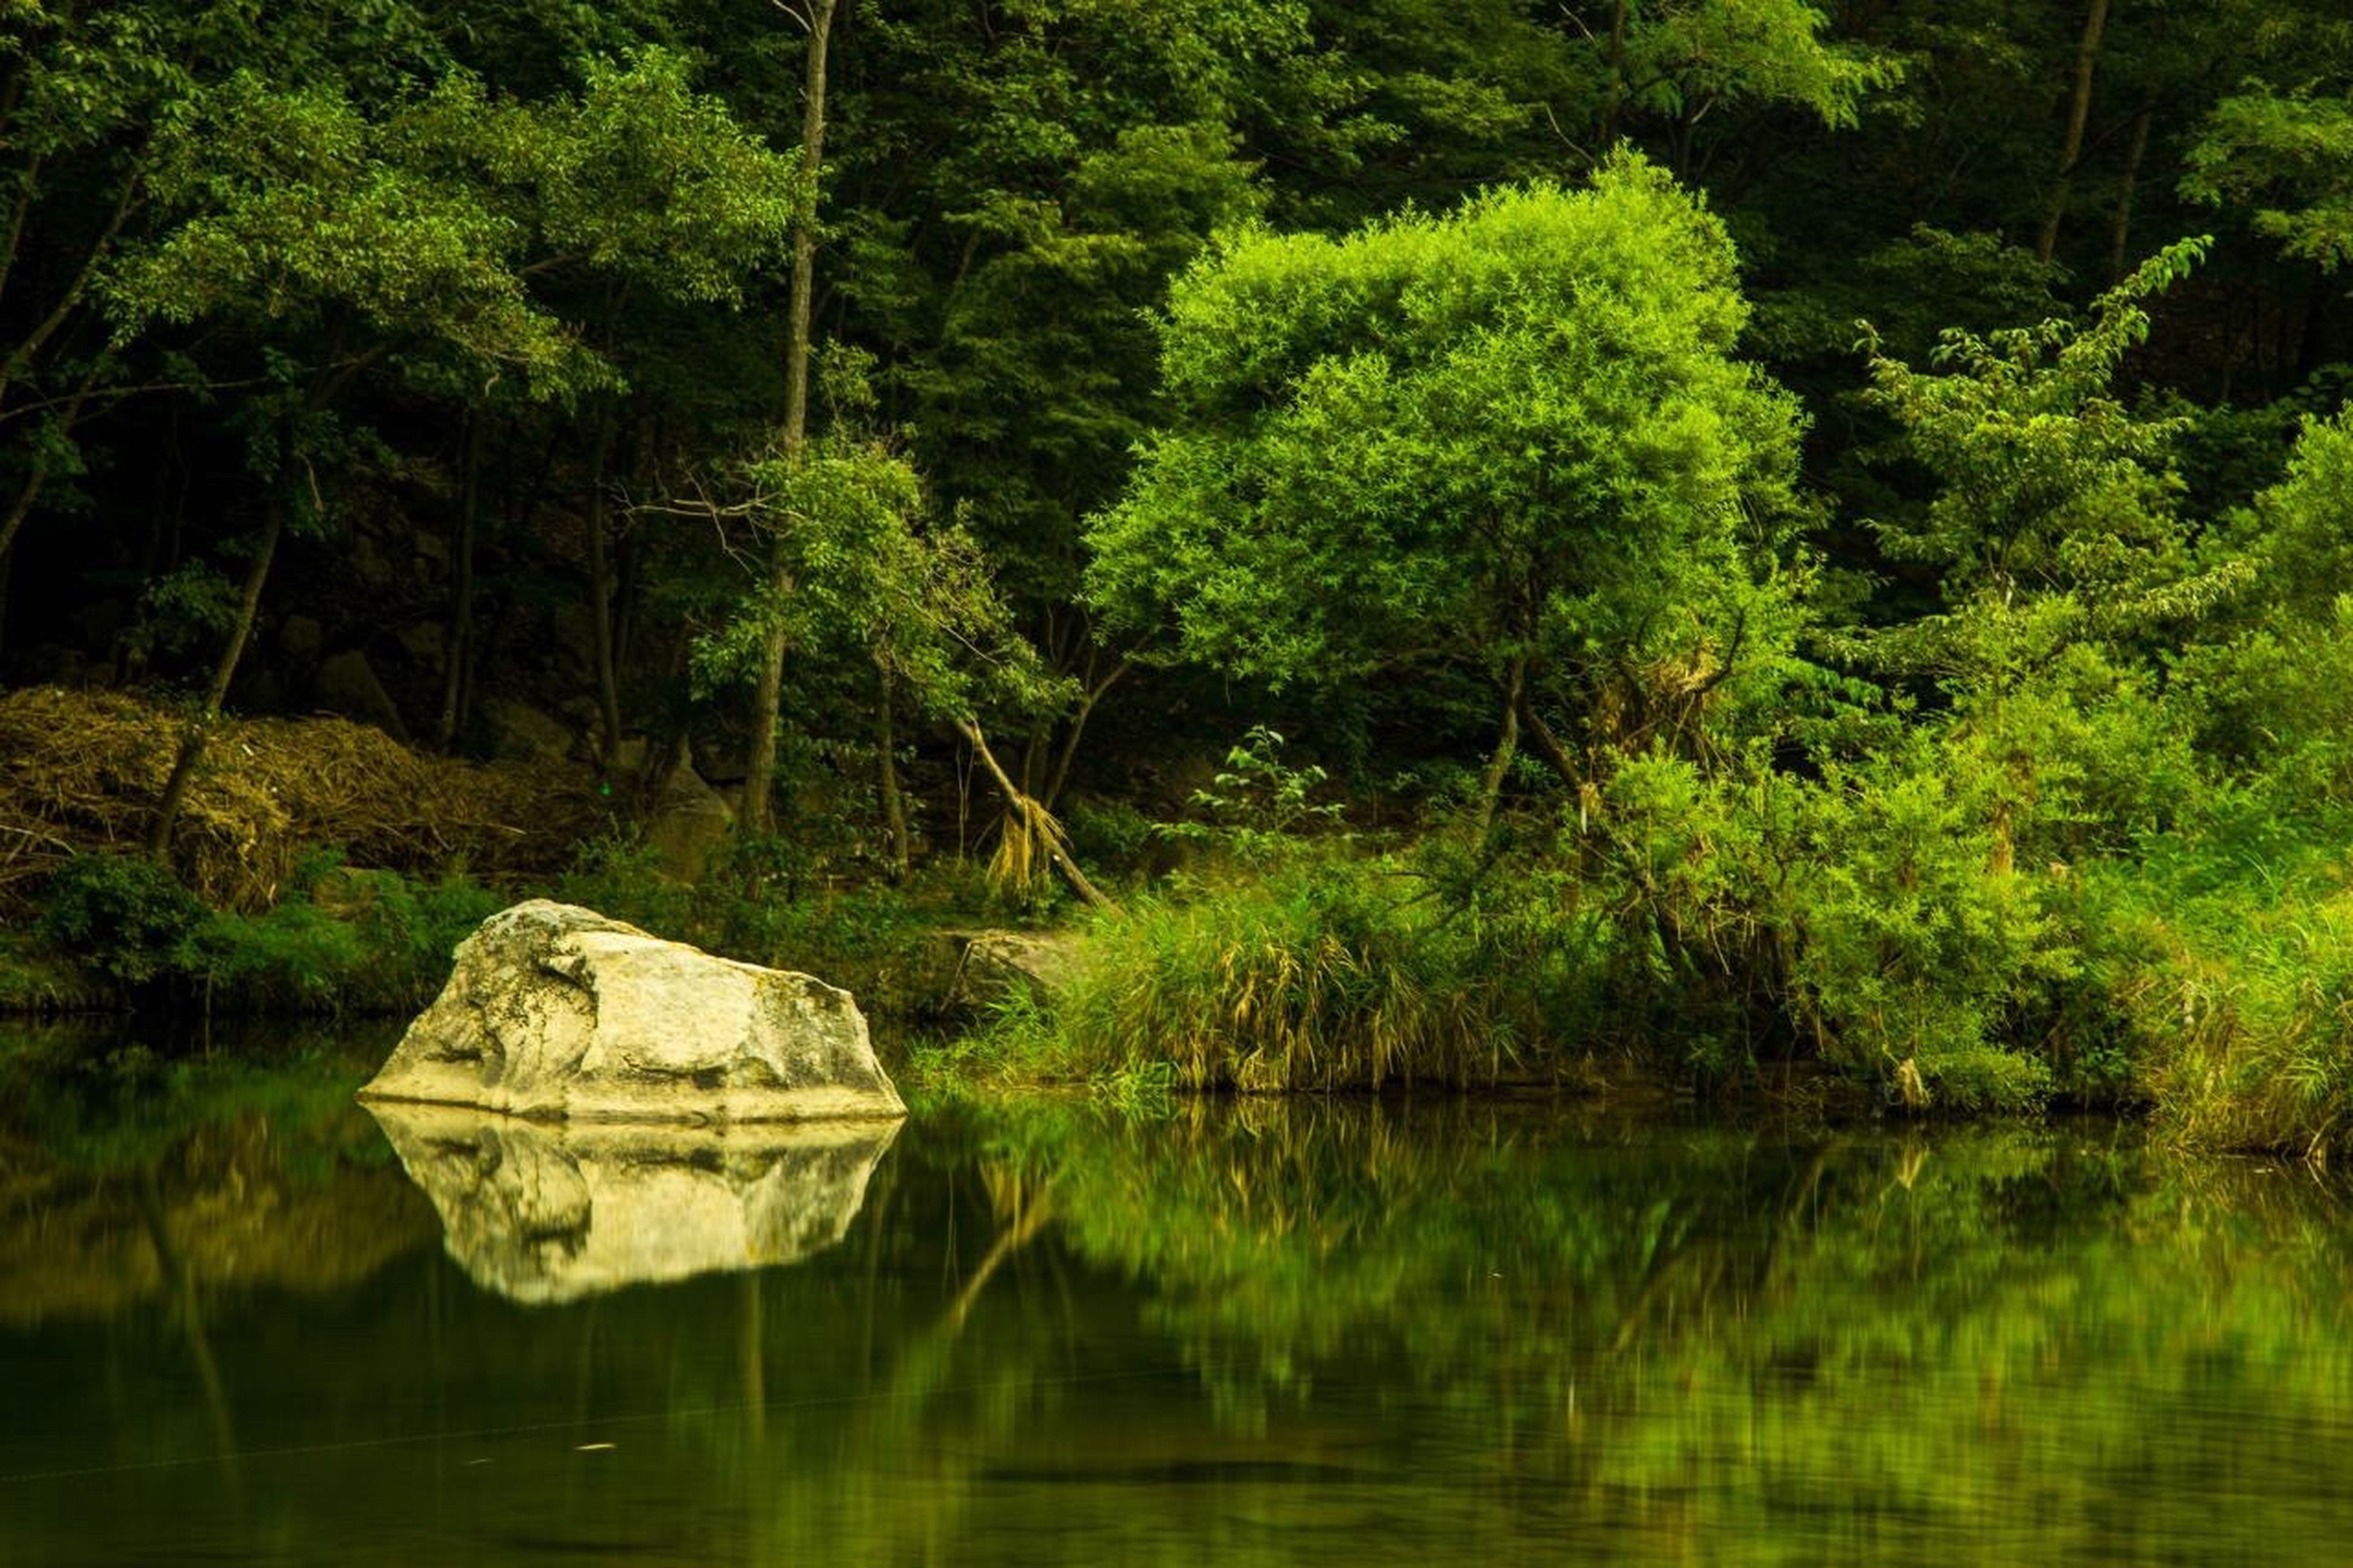 tree, water, reflection, waterfront, lake, tranquil scene, tranquility, scenics, green color, non-urban scene, beauty in nature, nature, growth, calm, day, standing water, greenery, no people, lush foliage